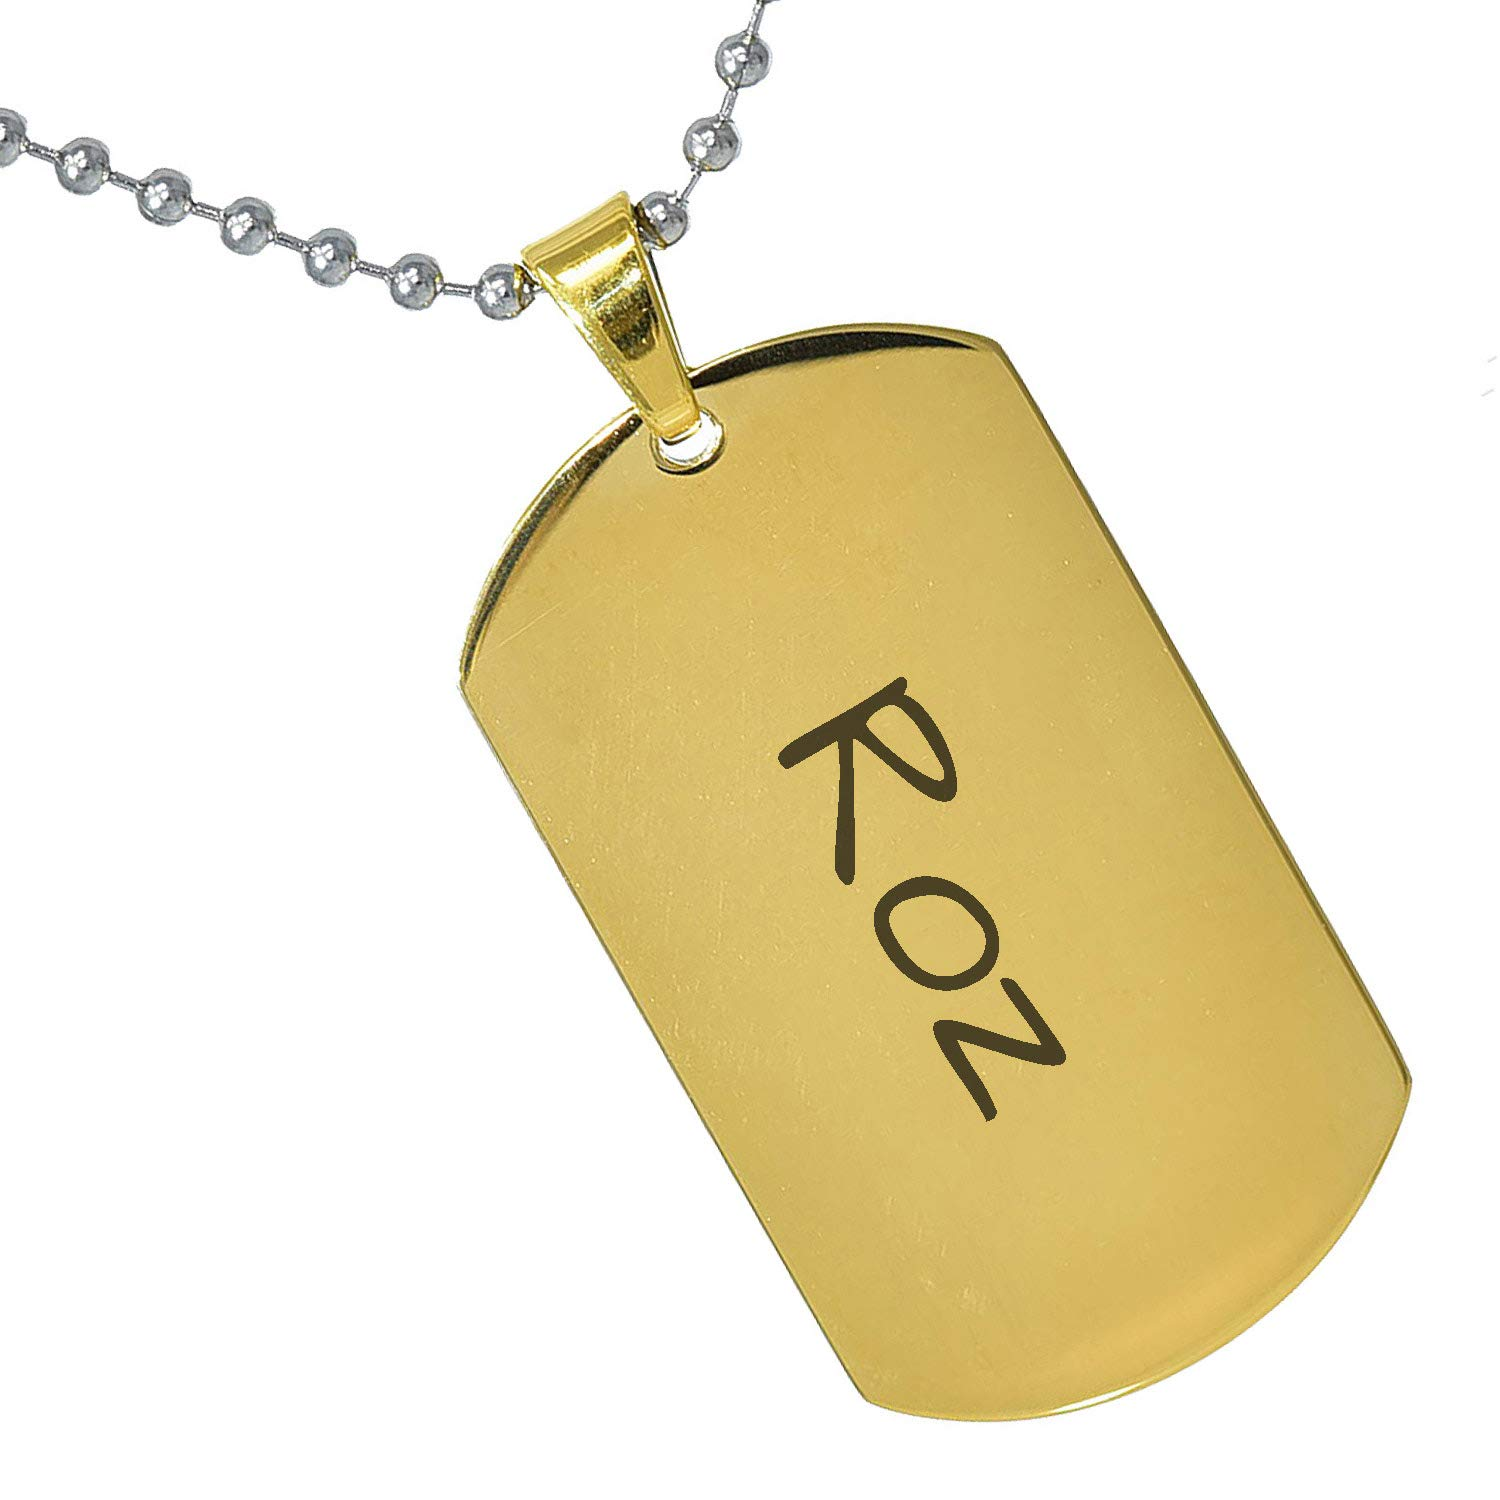 Stainless Steel Silver Gold Black Rose Gold Color Baby Name Roz Engraved Personalized Gifts For Son Daughter Boyfriend Girlfriend Initial Customizable Pendant Necklace Dog Tags 24 Ball Chain